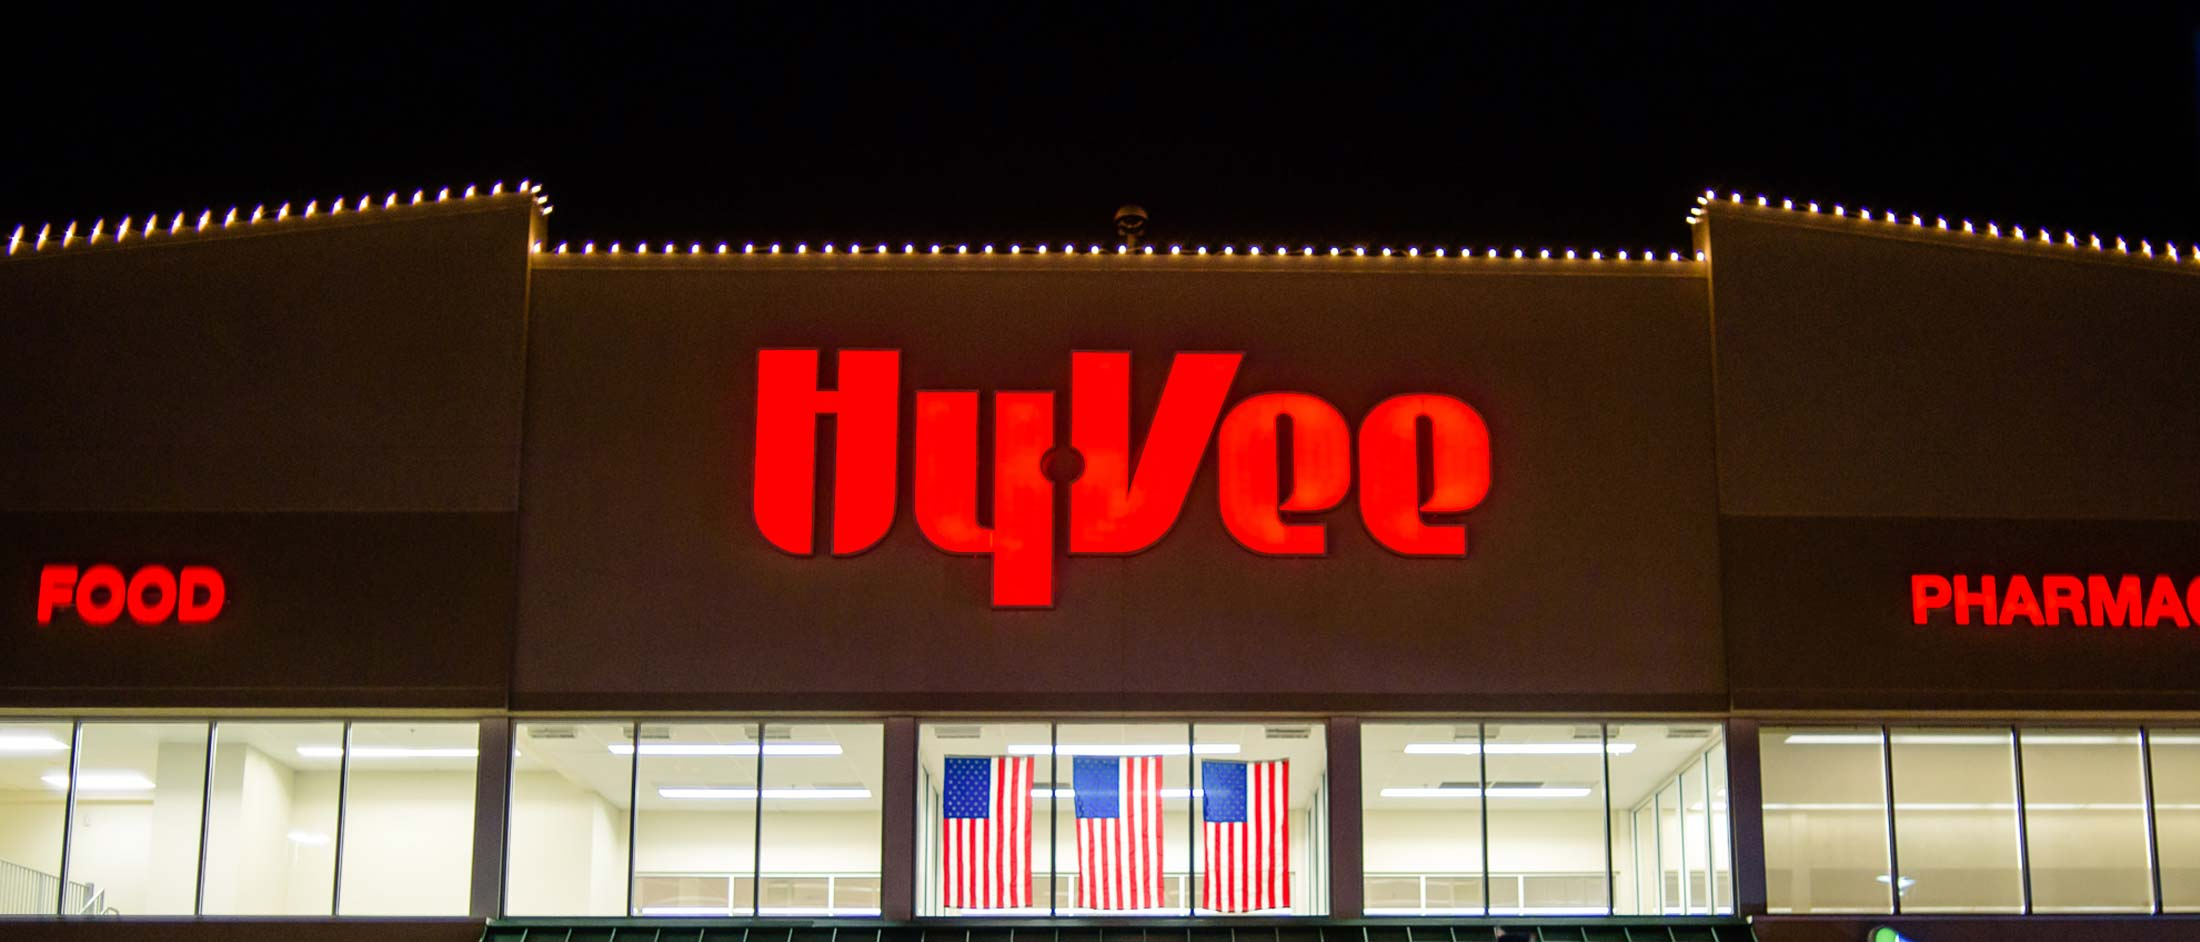 Hyvee christmas holiday lighting